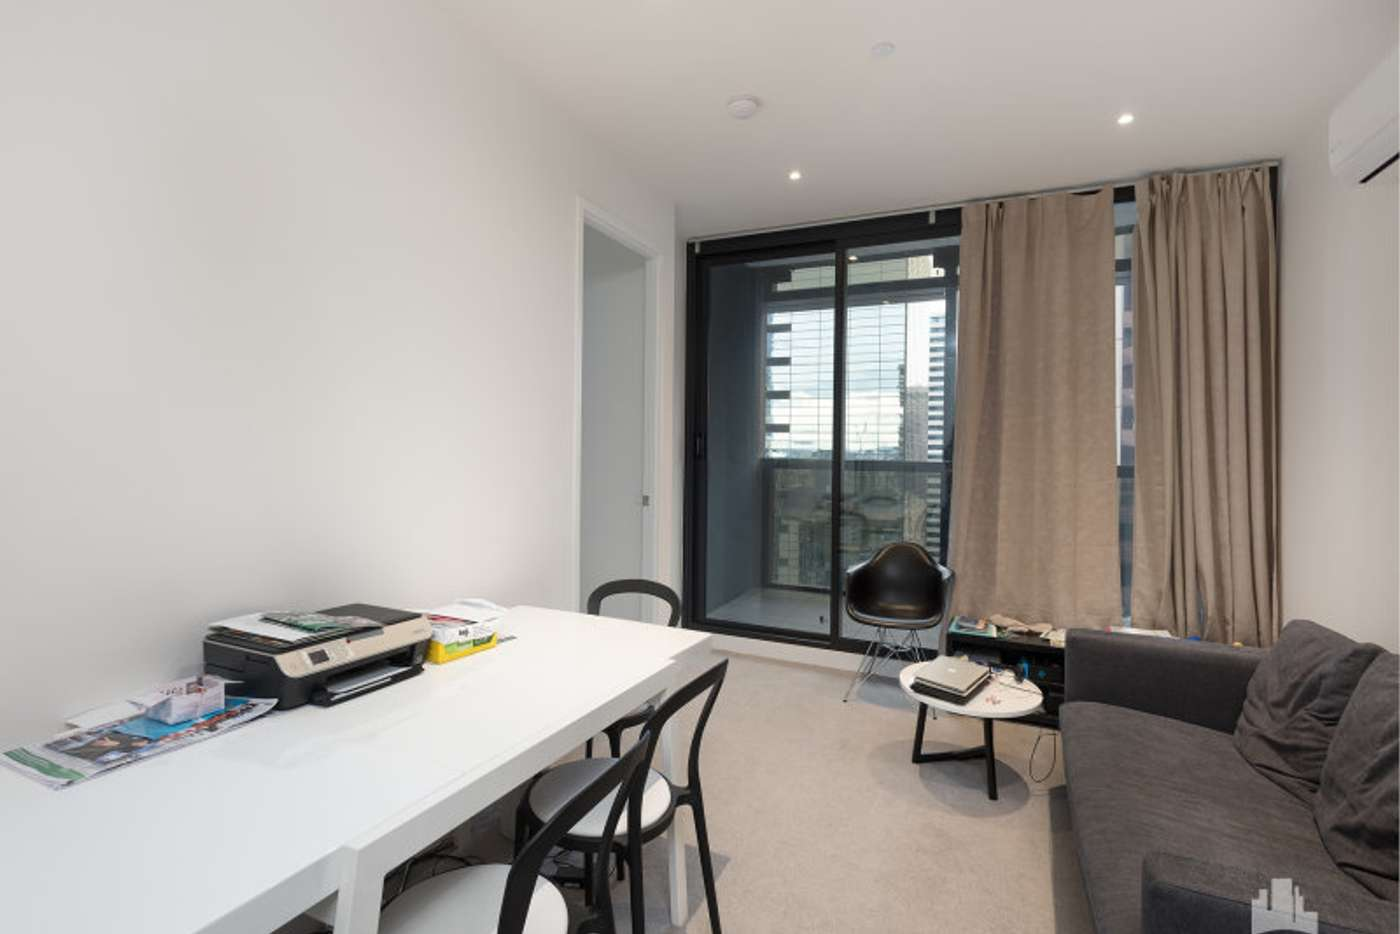 Main view of Homely apartment listing, 2110/120 A'beckett Street, Melbourne VIC 3000